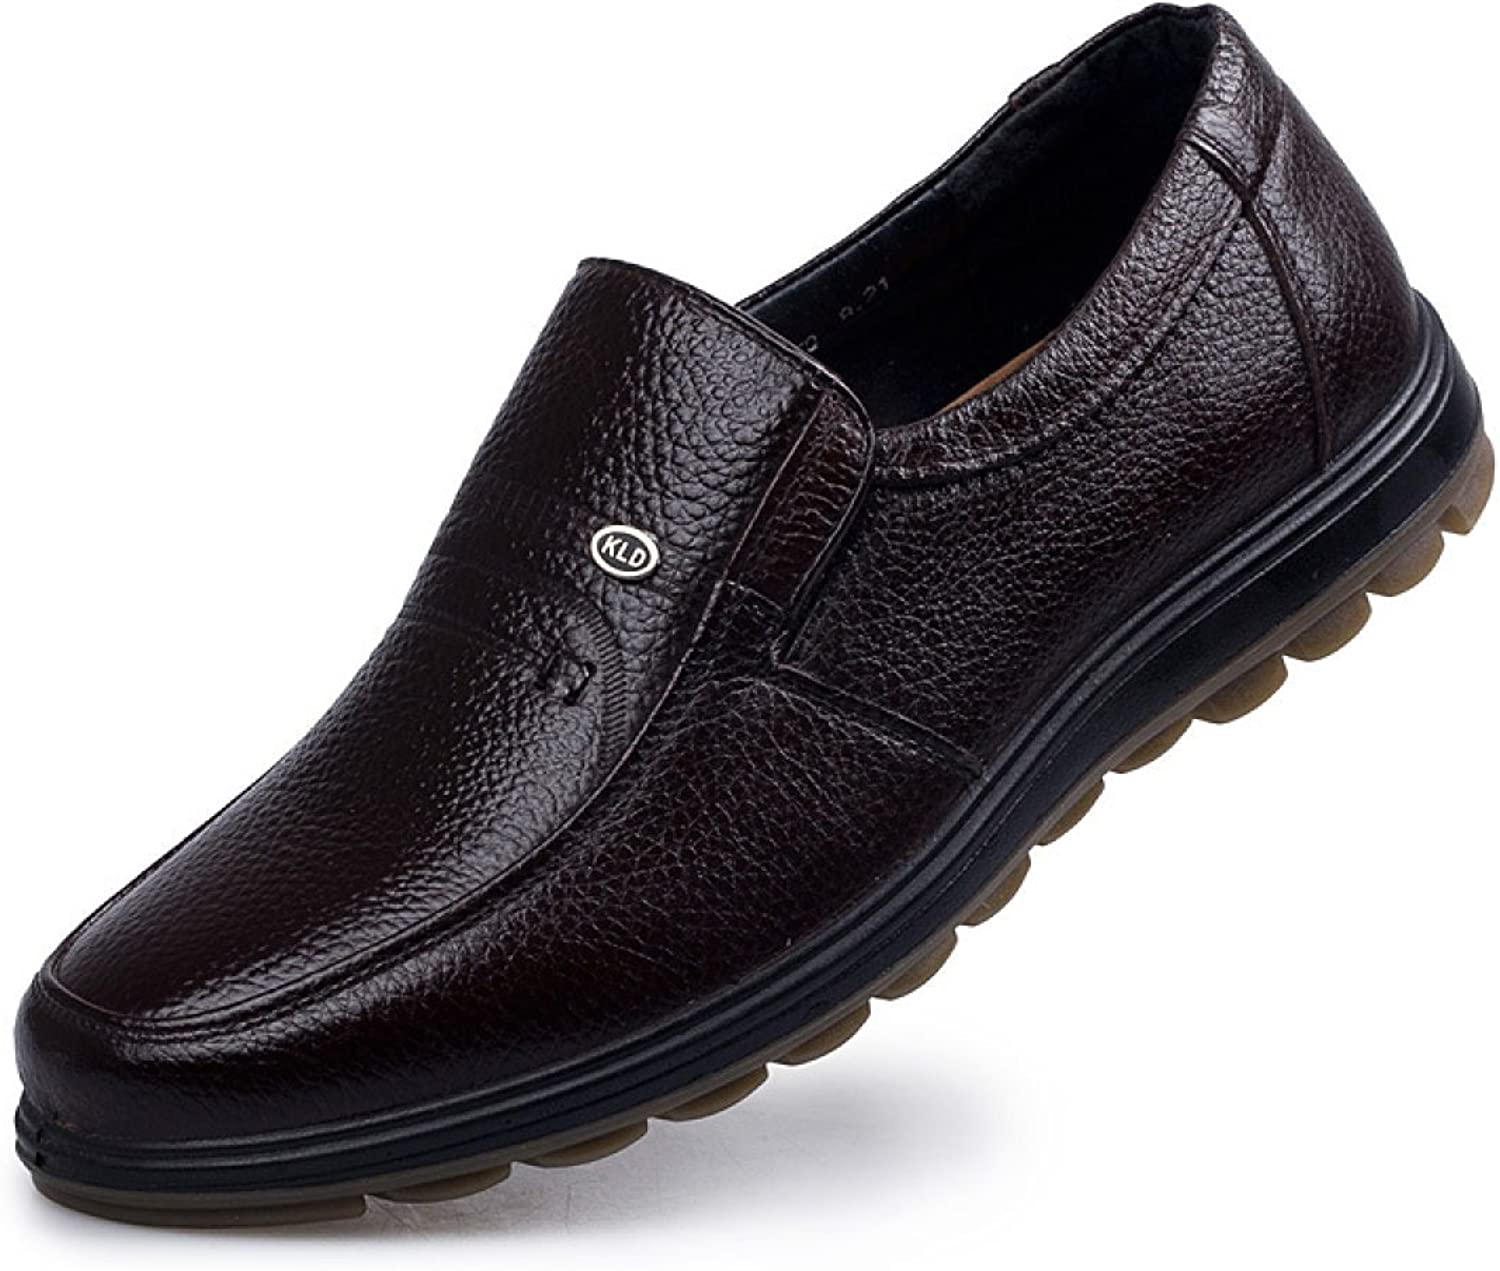 Classic Dad shoes Leather Business Casual Men's shoes Men's Leather shoes Middle-aged Fashion Men's shoes